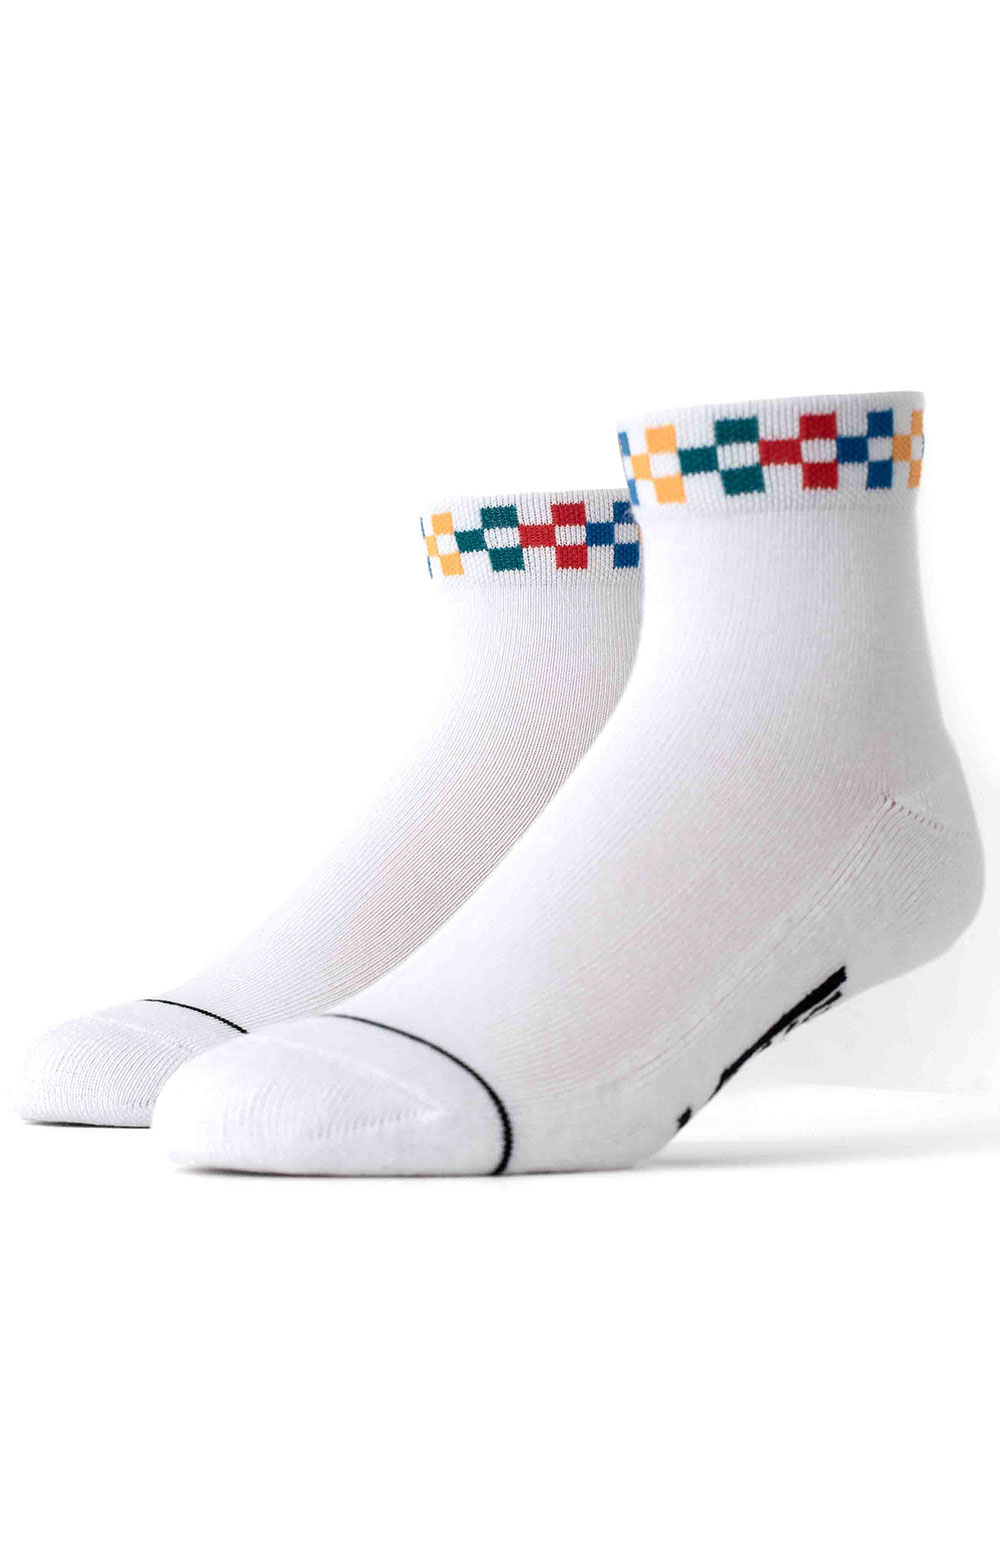 Peek A Check Socks - White